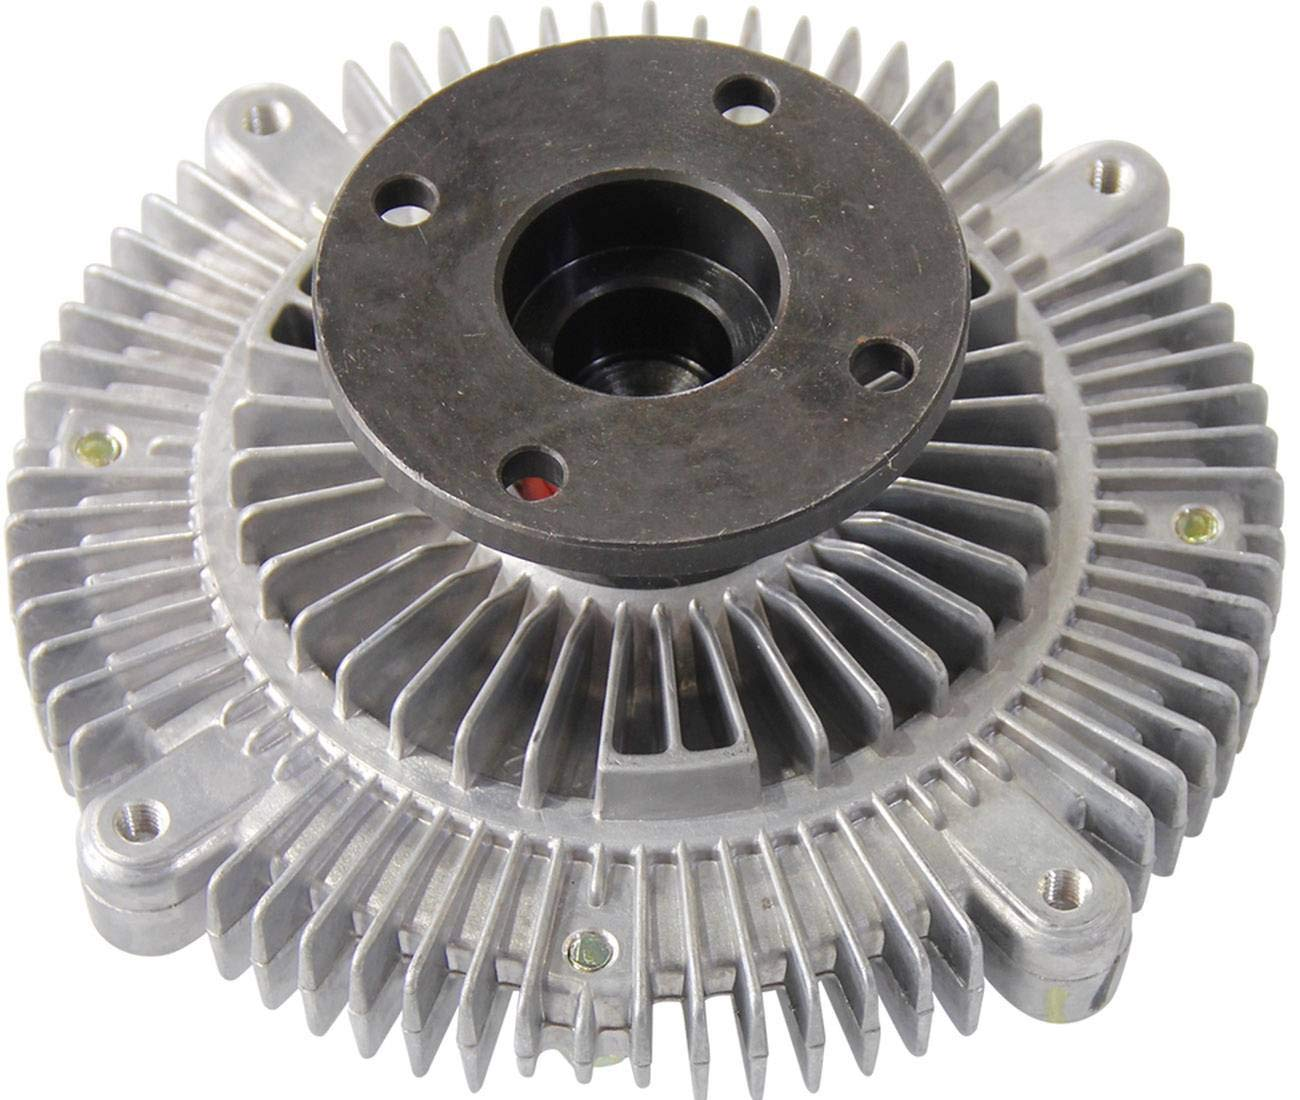 TOPAZ 950-2040 Engine Cooling Fan Clutch for Nissan Infiniti